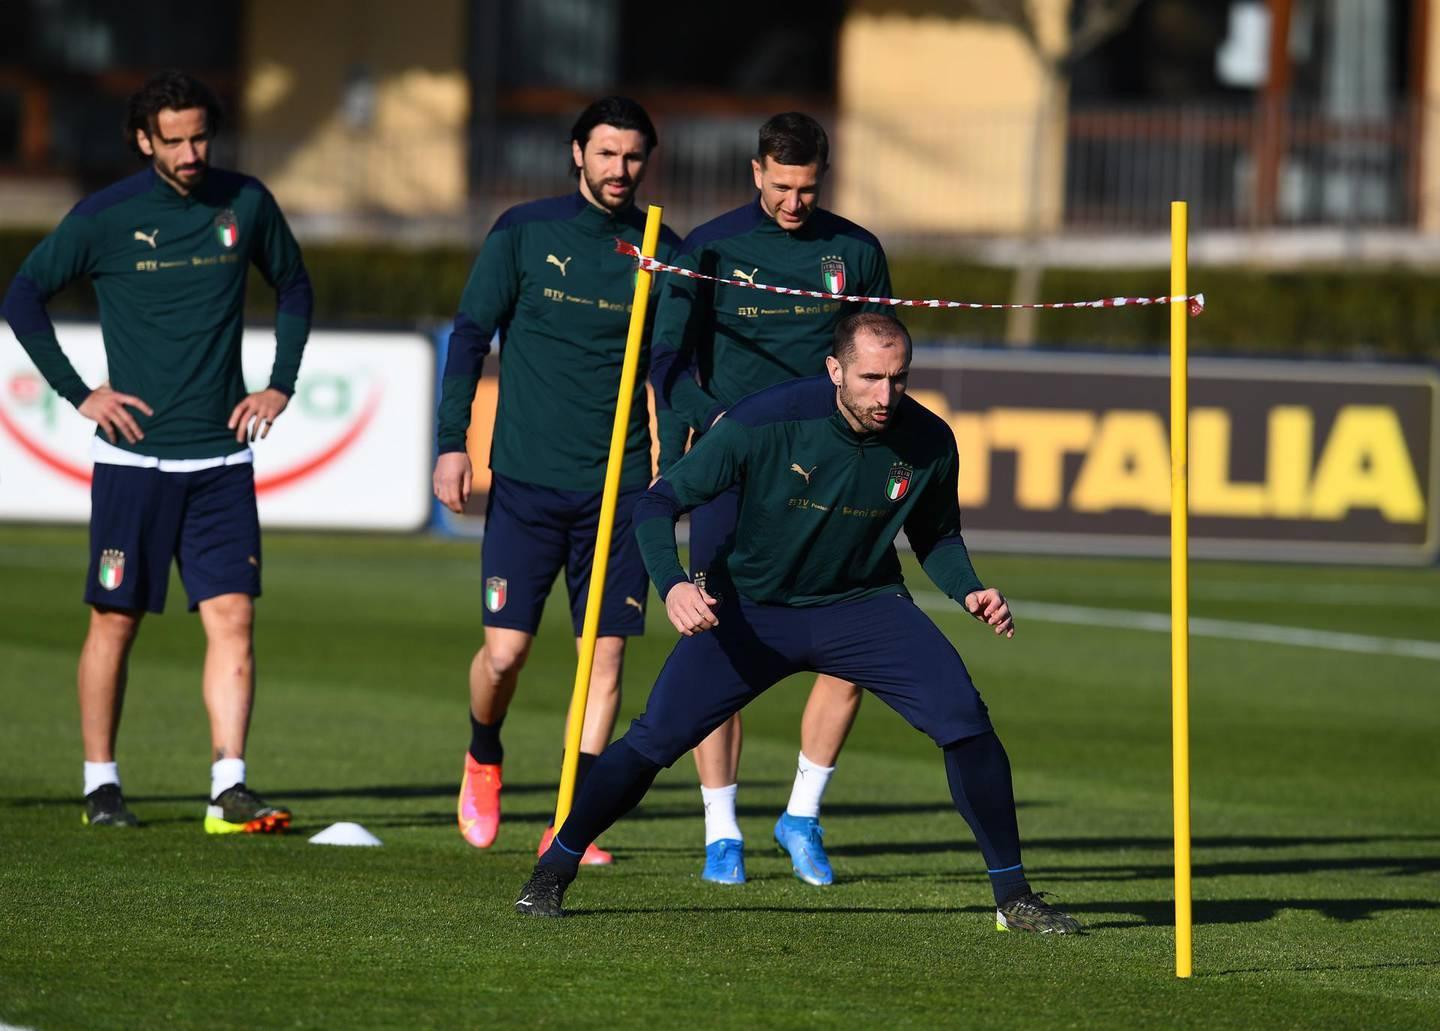 FLORENCE, ITALY - MARCH 23: Giorgio Chiellini attendsan Italy training session at Centro Tecnico Federale di Coverciano on March 23, 2021 in Florence, Italy. (Photo by Claudio Villa/Getty Images)